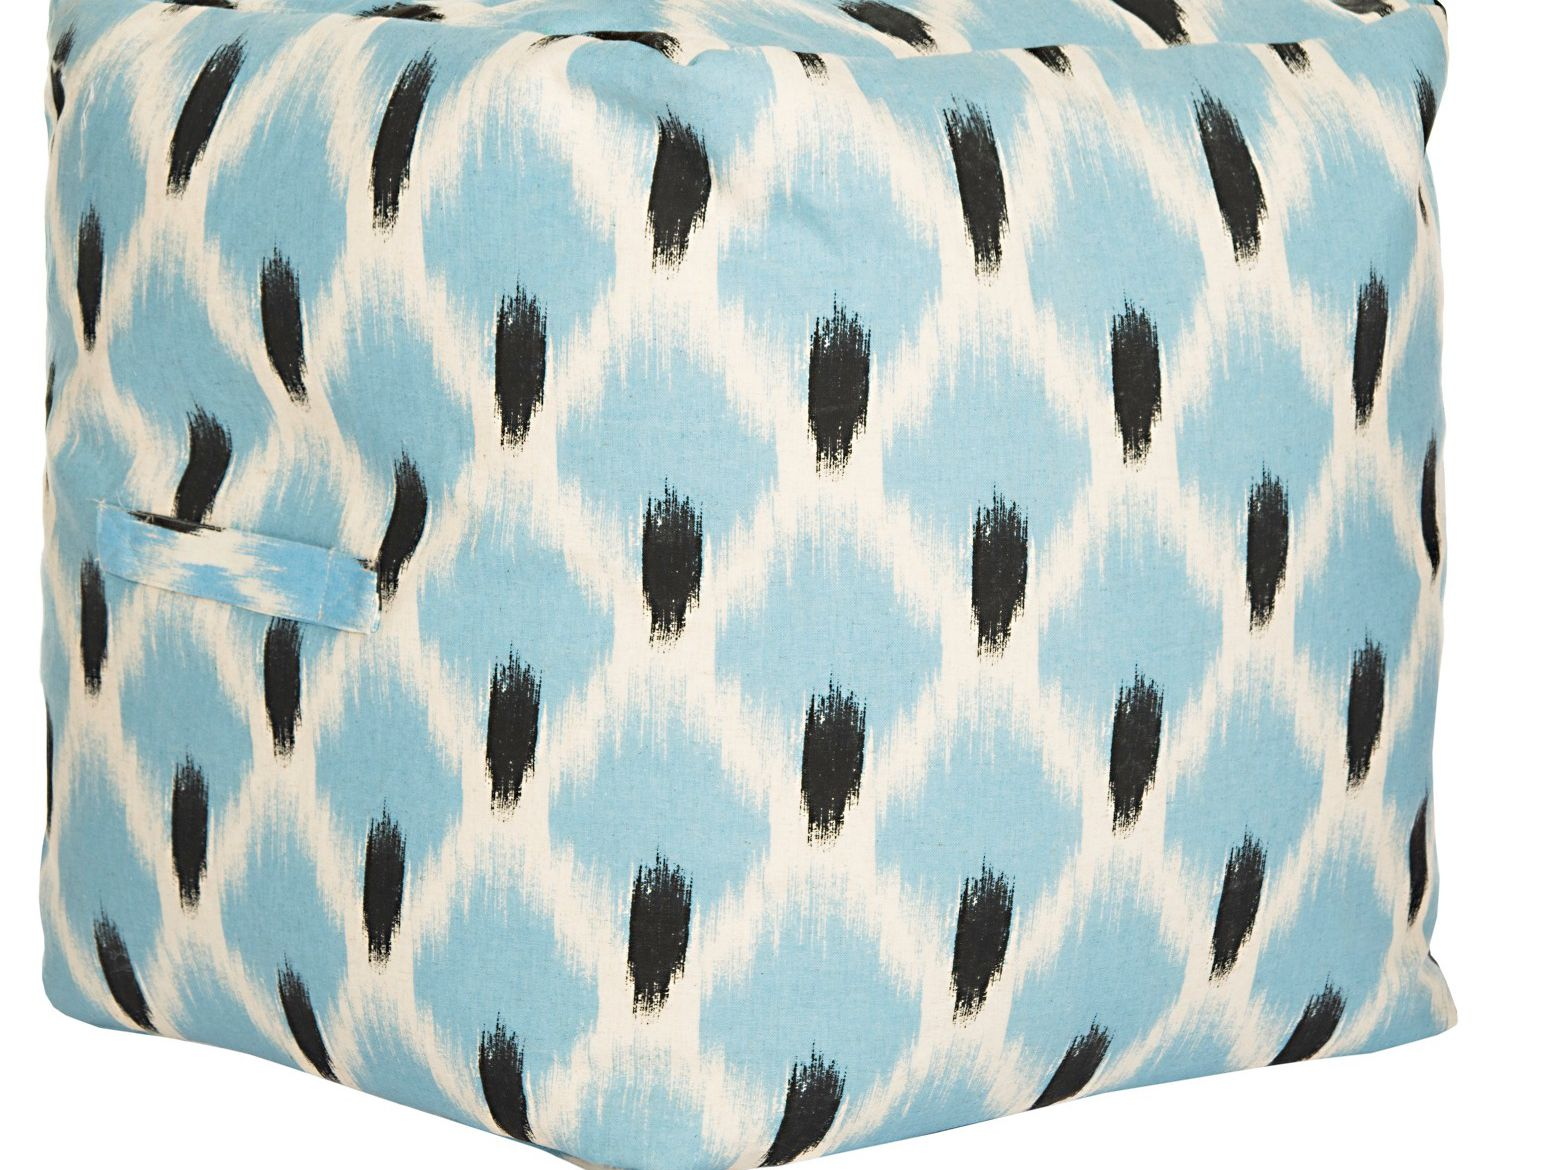 Peachy The 7 Best Poufs For Your Feet Or Seat Of 2019 Squirreltailoven Fun Painted Chair Ideas Images Squirreltailovenorg